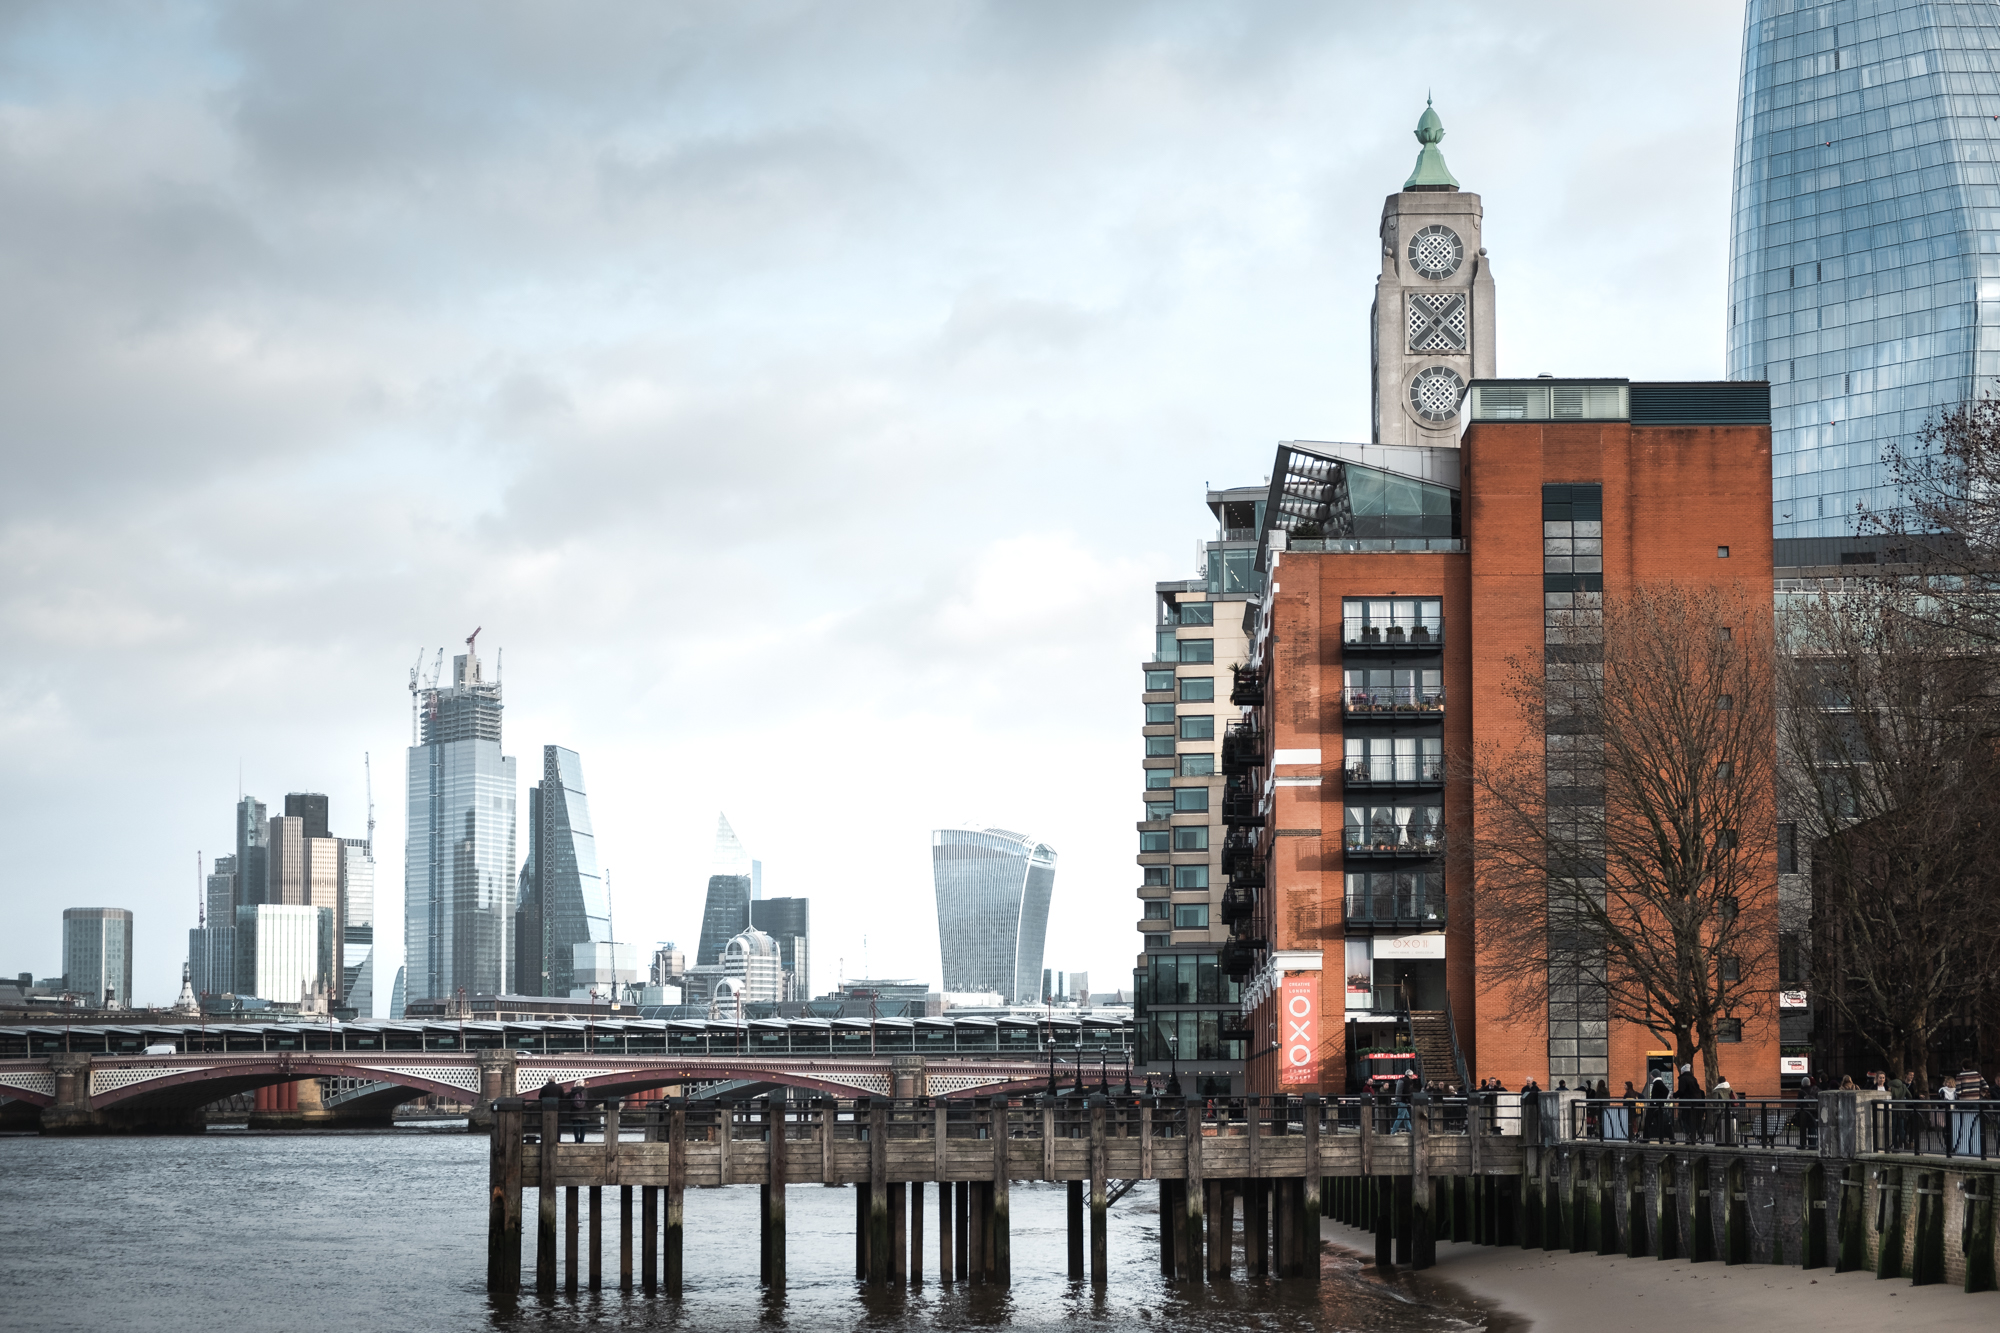 A photo of The Oxo Building in London by Trevor Sherwin Photography